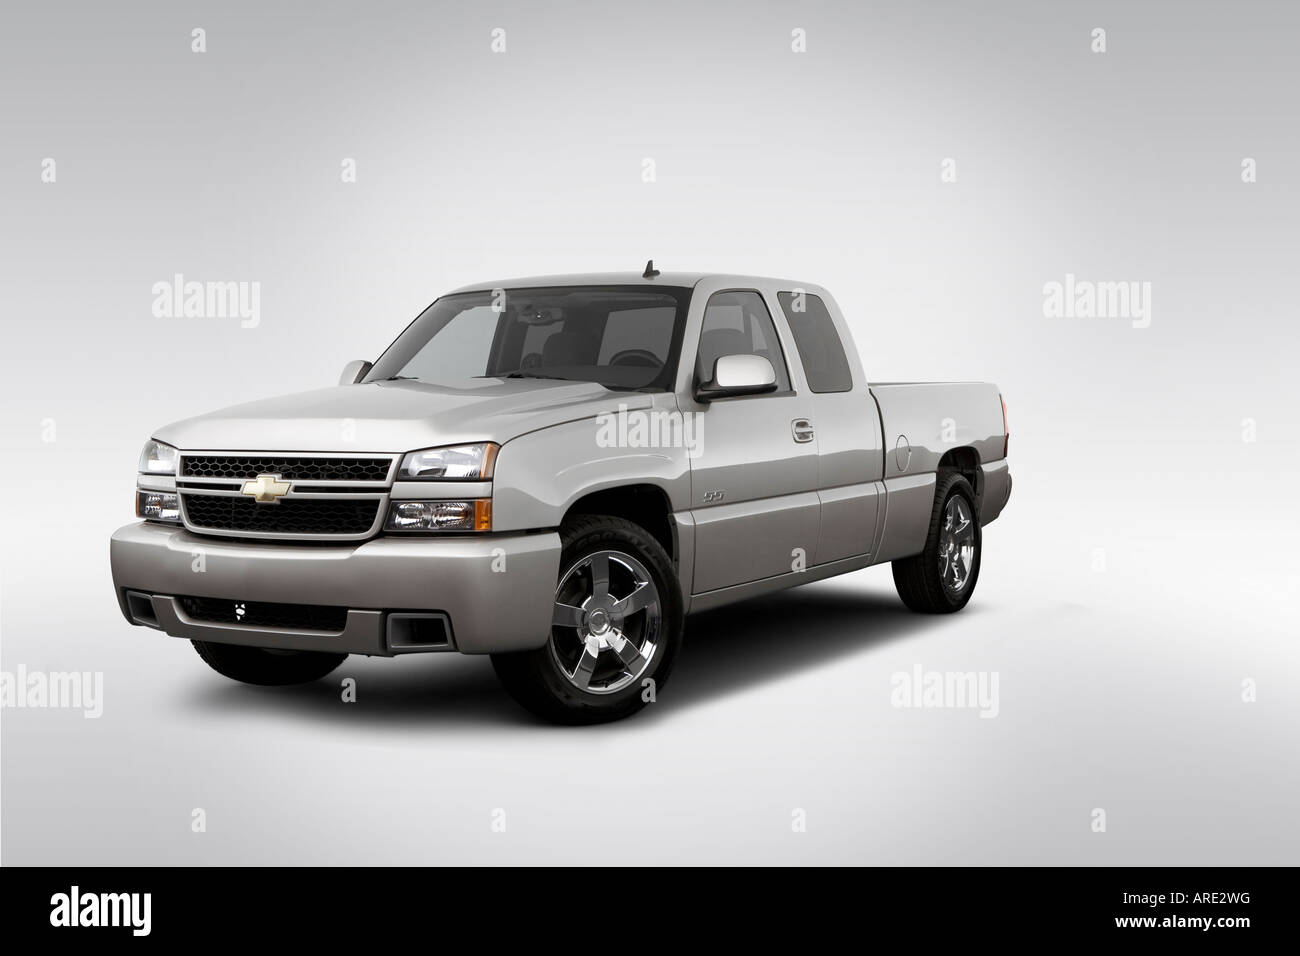 All Chevy chevy 1500 ss : 2006 Chevrolet Silverado 1500 SS in Silver - Front angle view ...